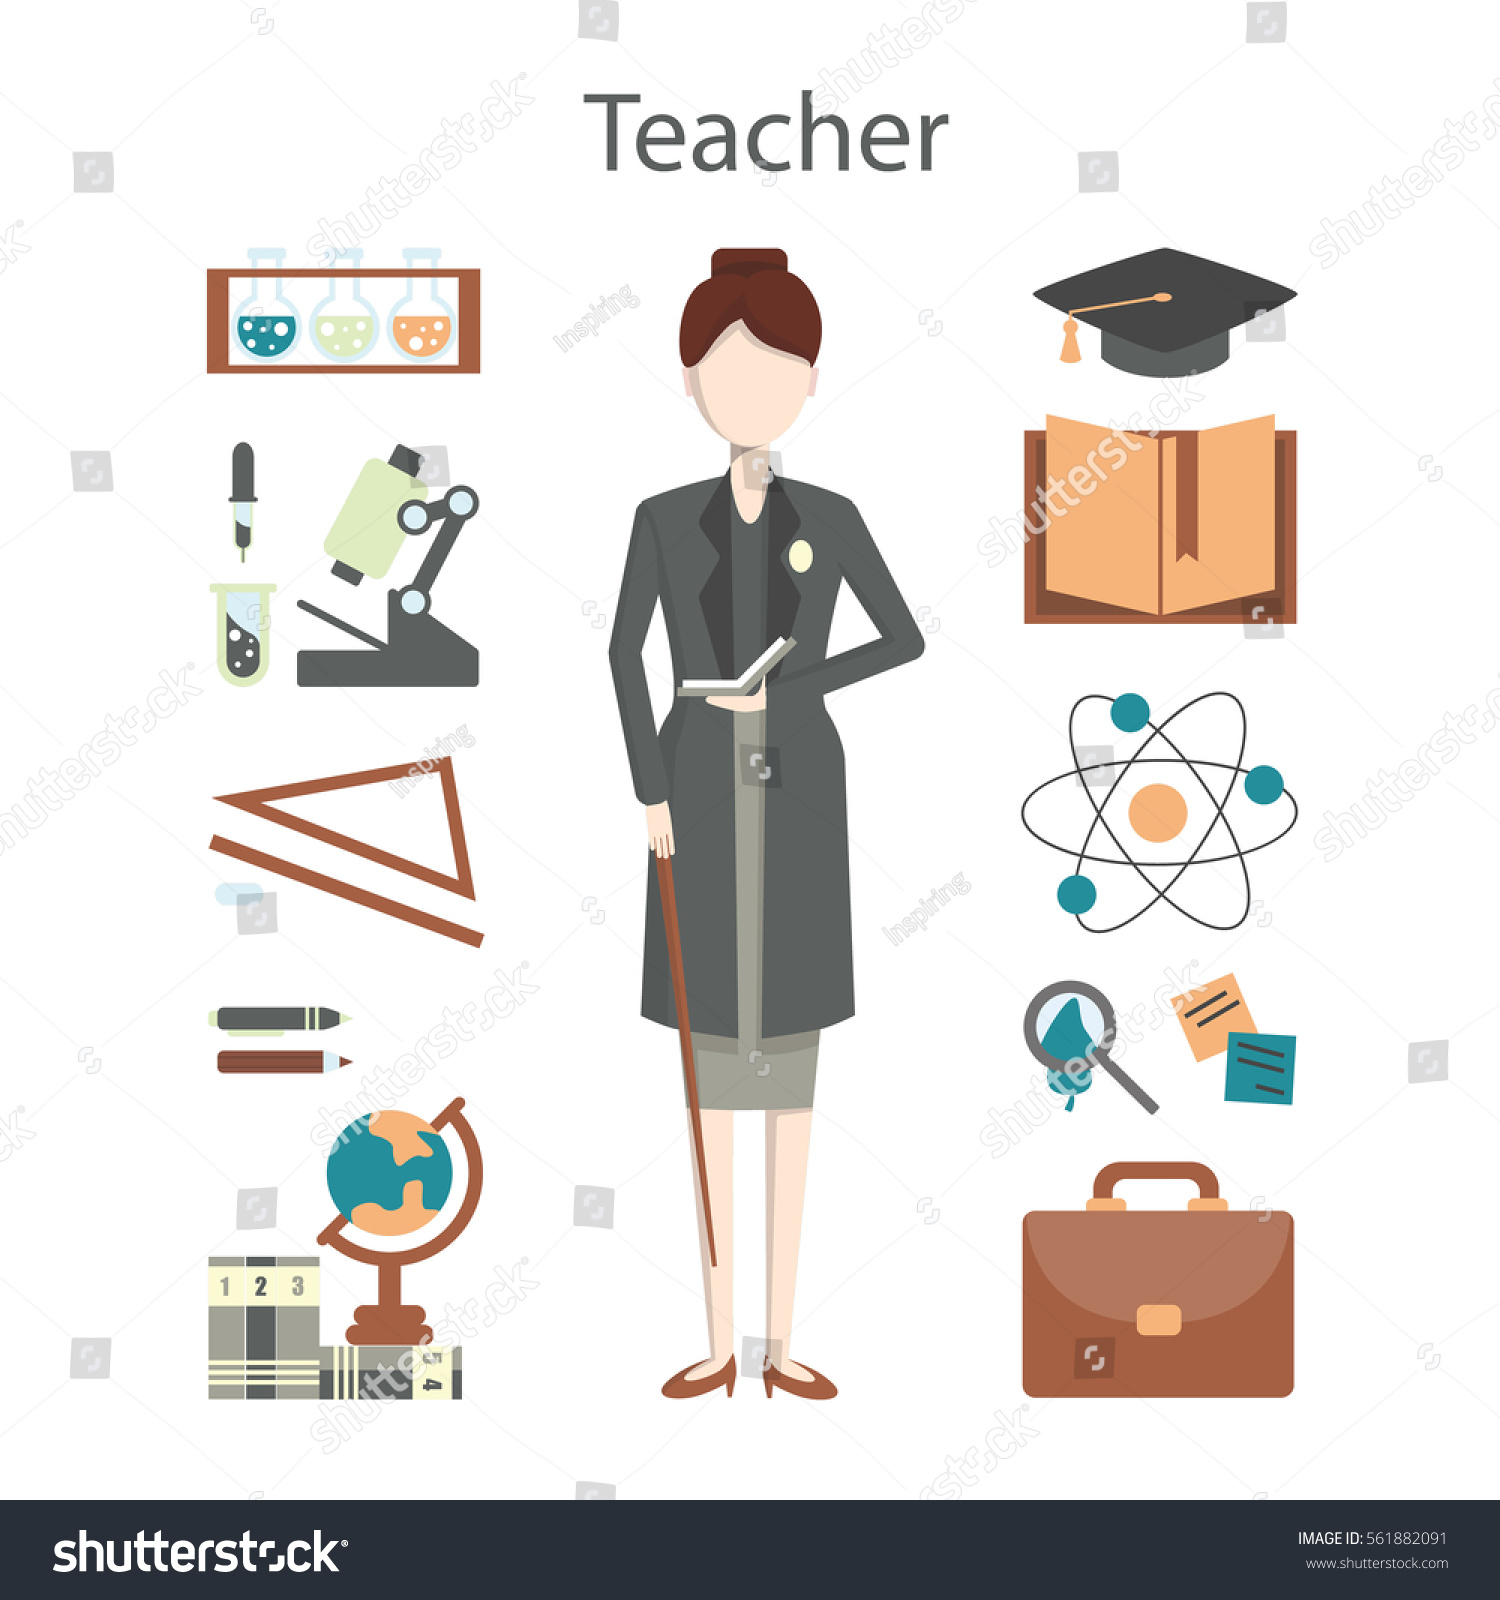 How to Be a Professional Teacher How to Be a Professional Teacher new picture